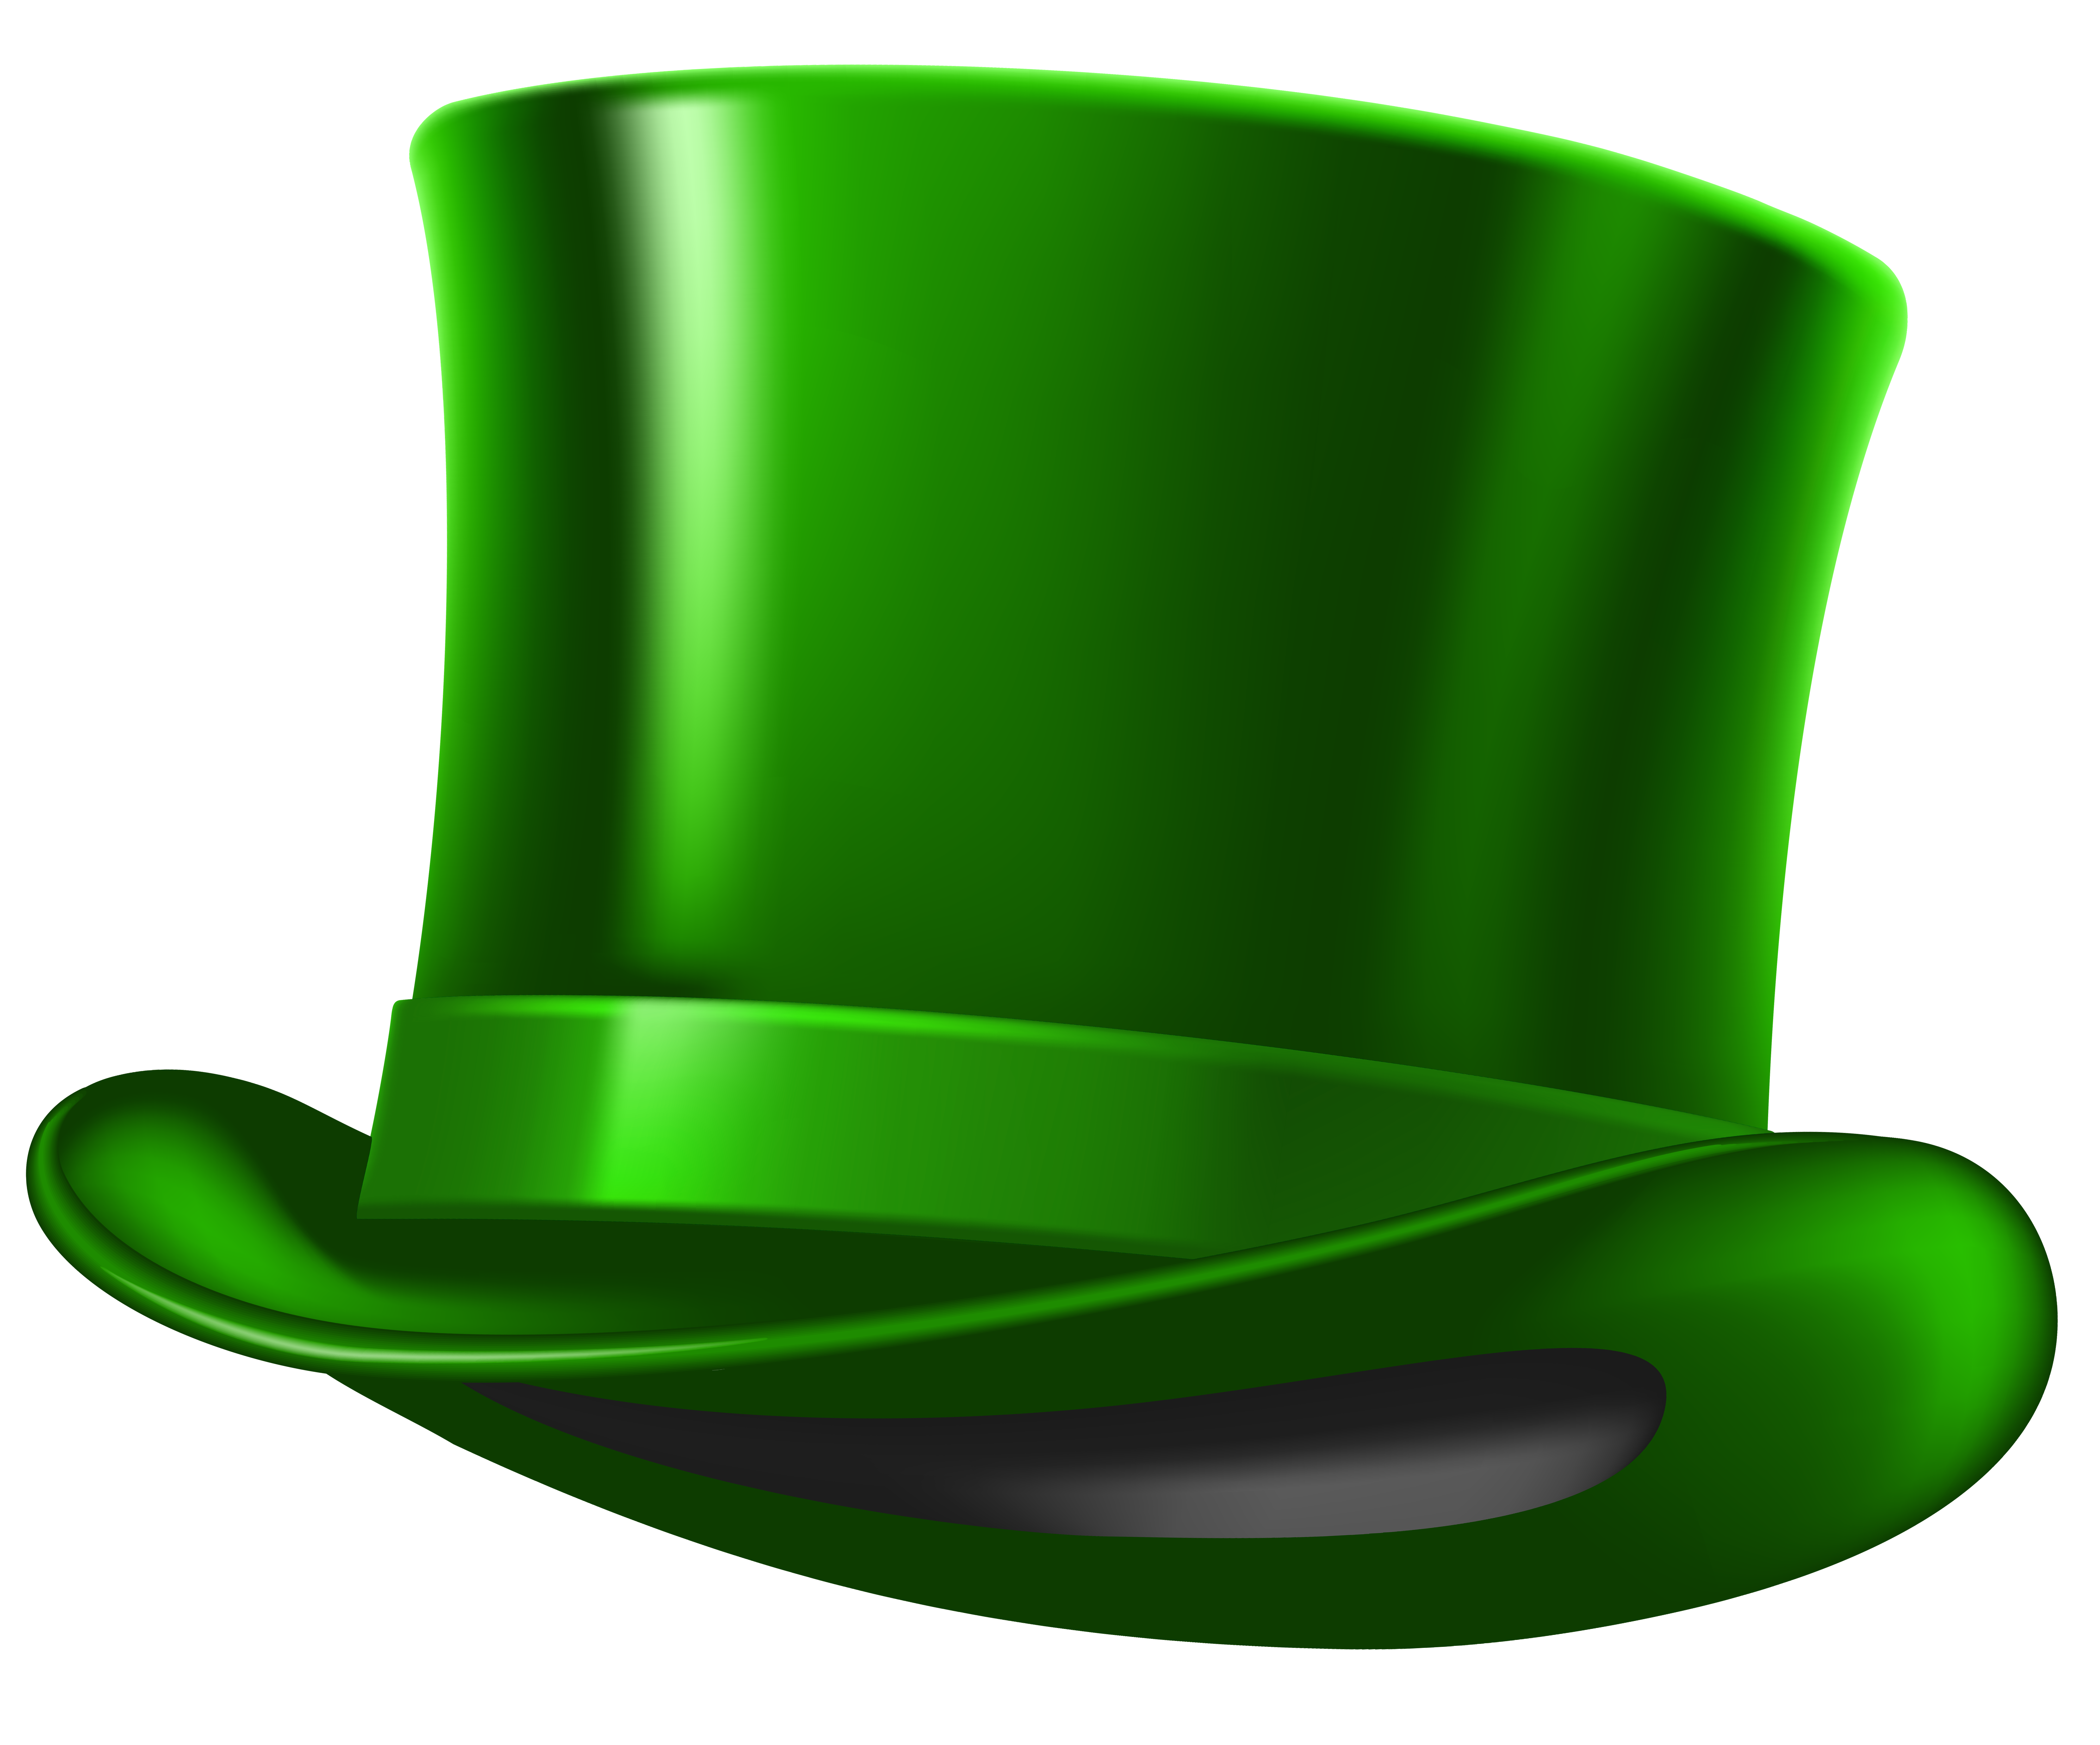 6334x5263 St Patricks Day Hat Png Clipart Imageu200b Gallery Yopriceville